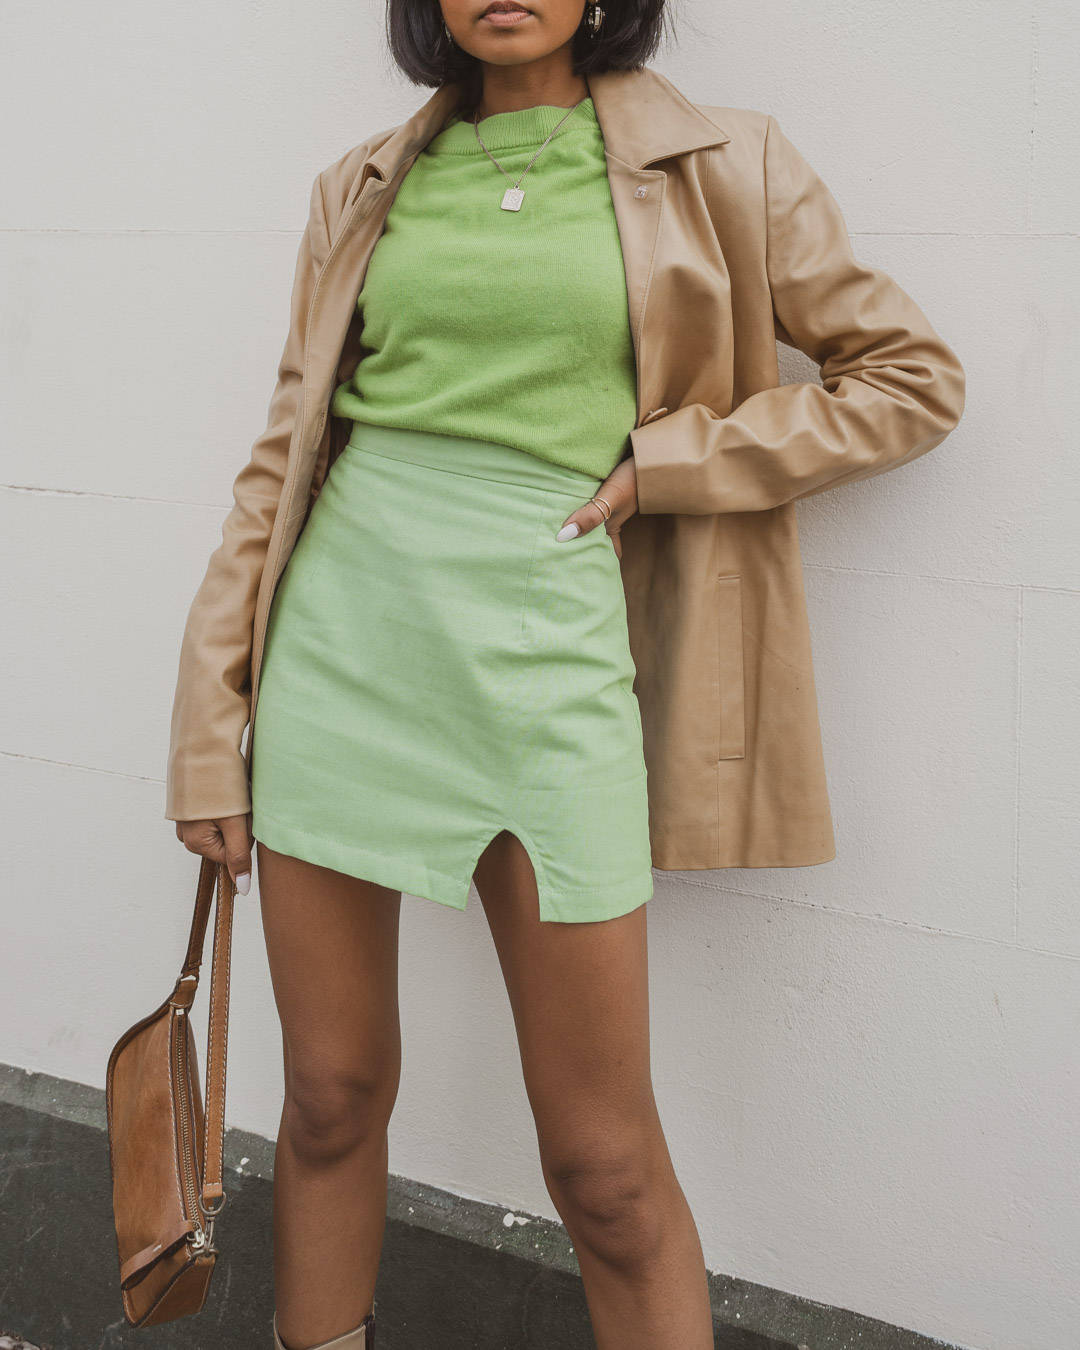 Green Outfit Image Close Up